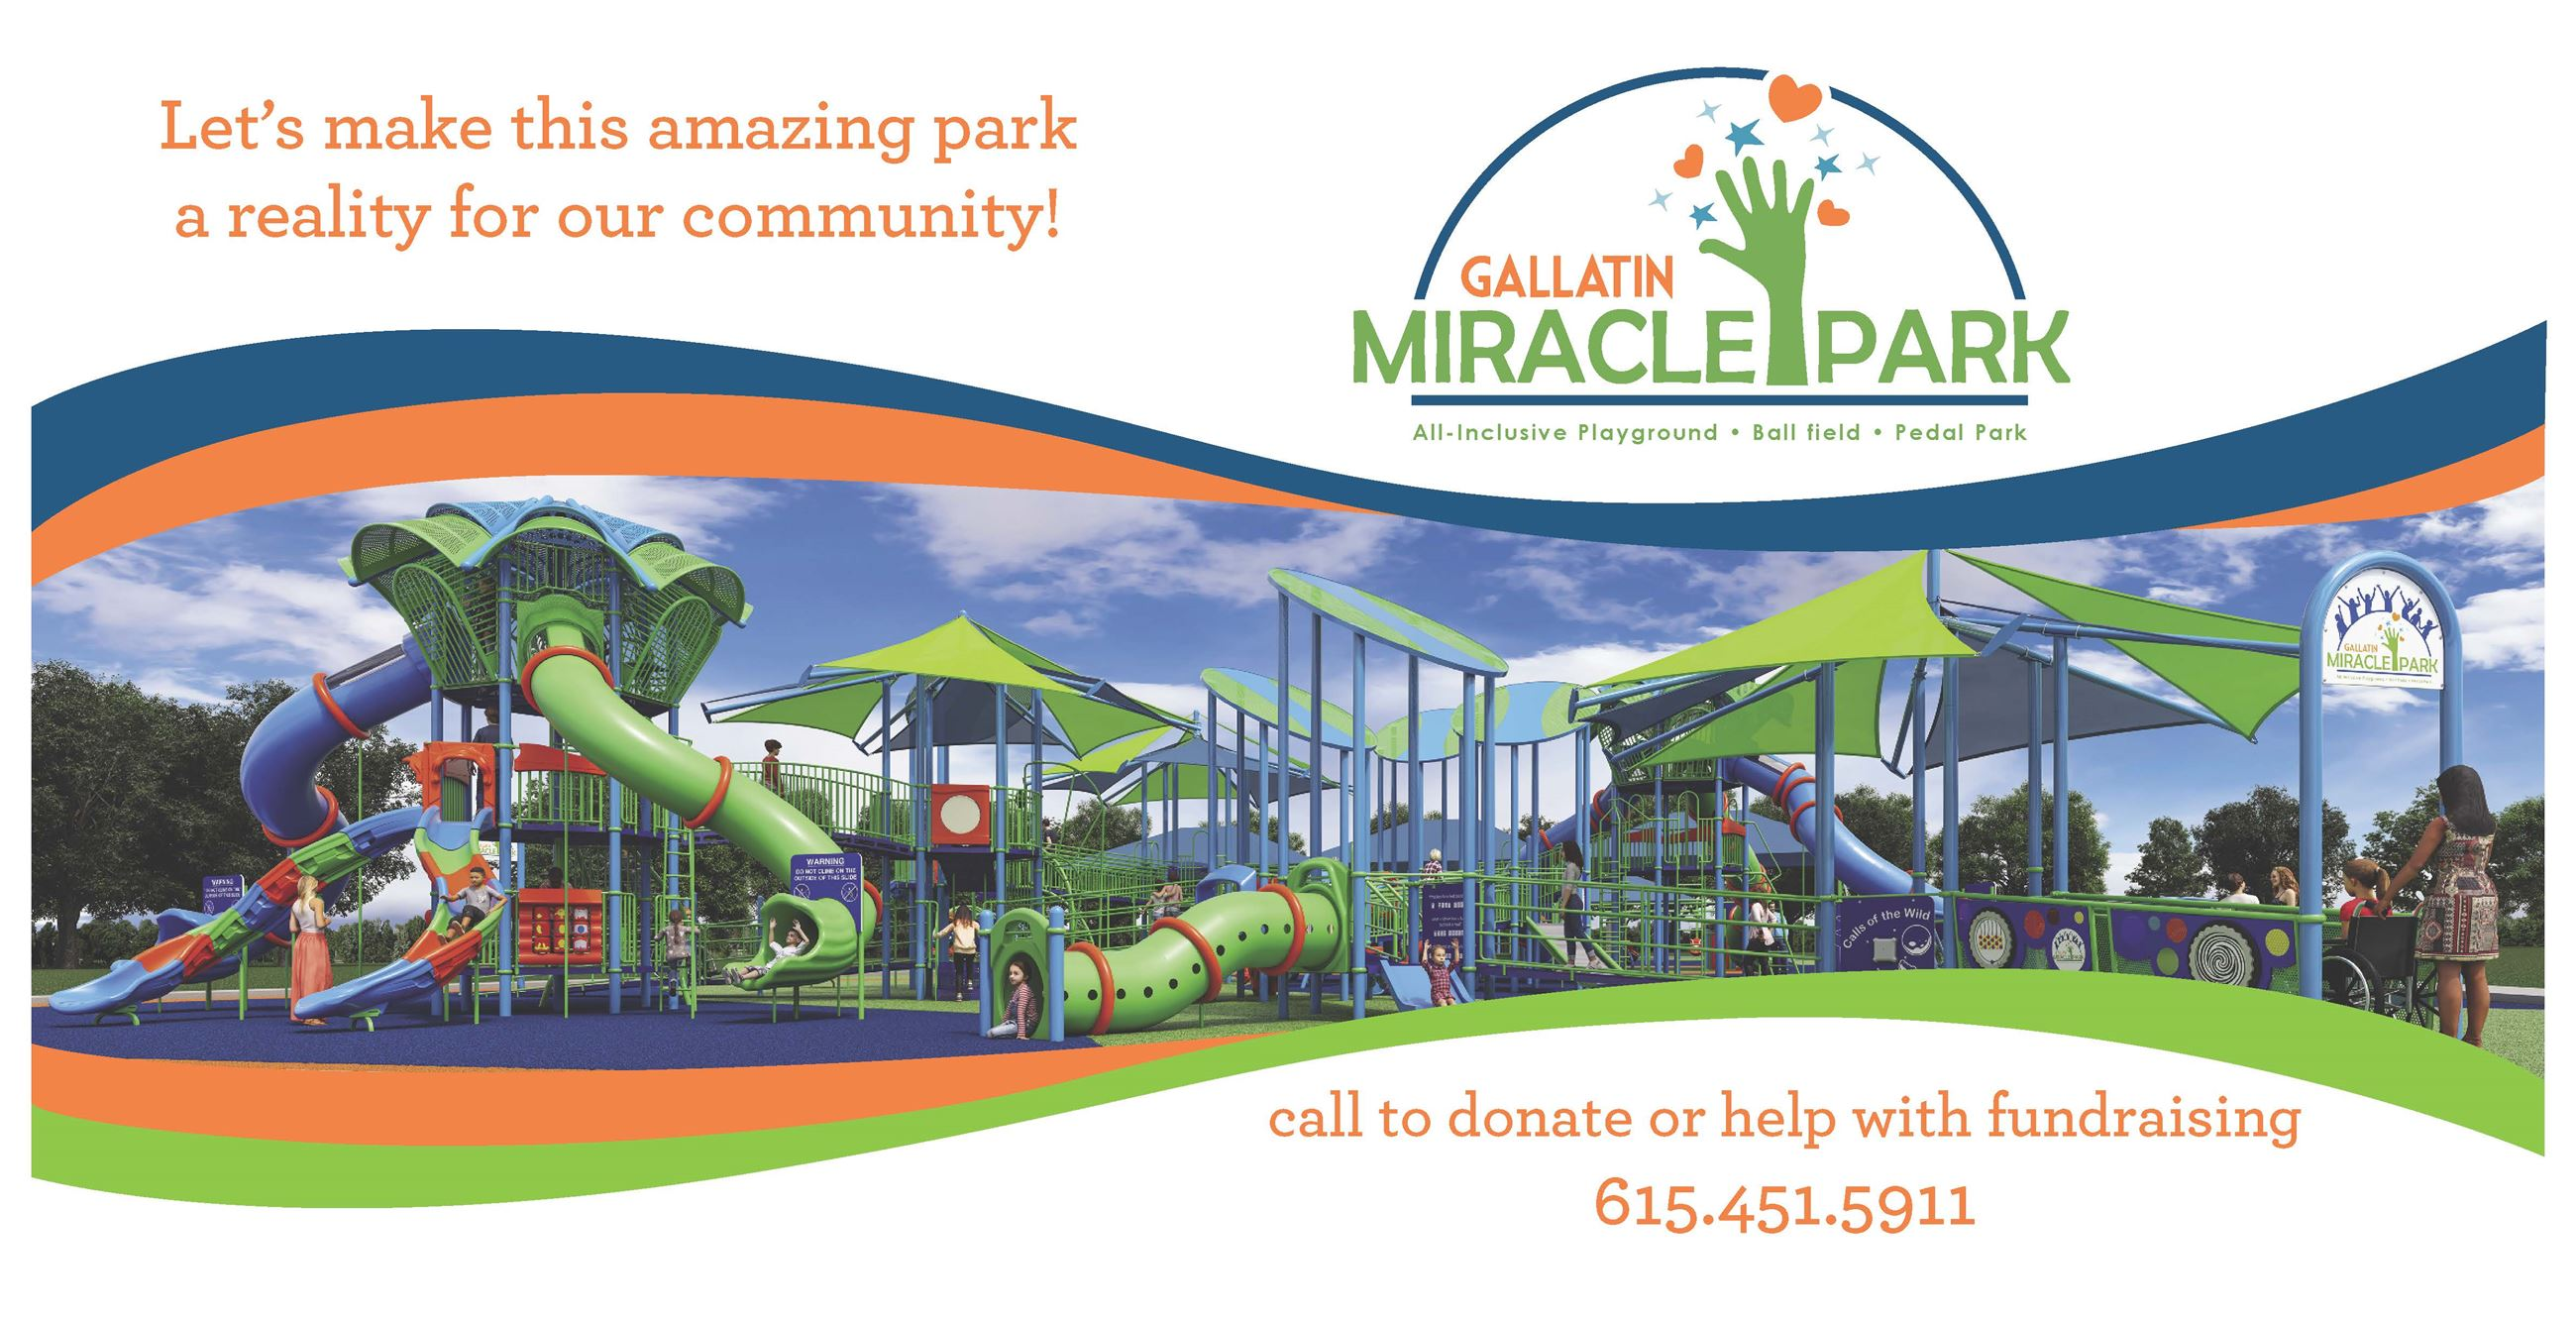 miraclepark ad for 2019 10x5